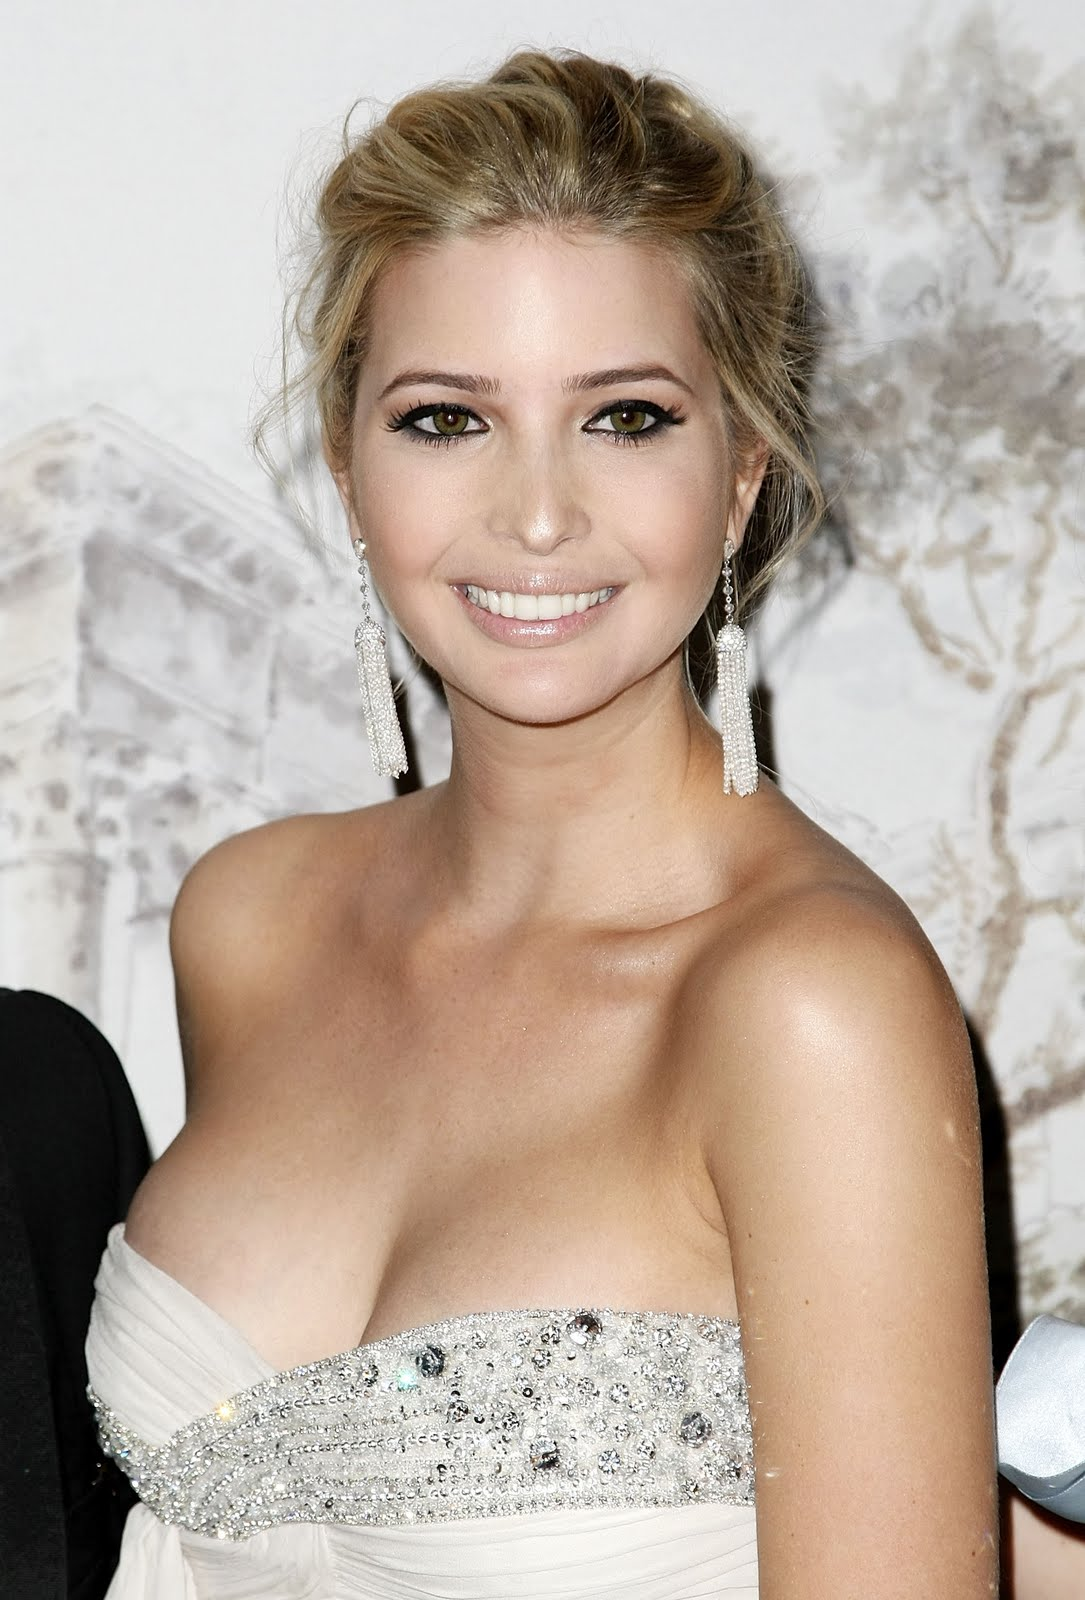 Ivanka Trump Actress And ModelIvanka Trump